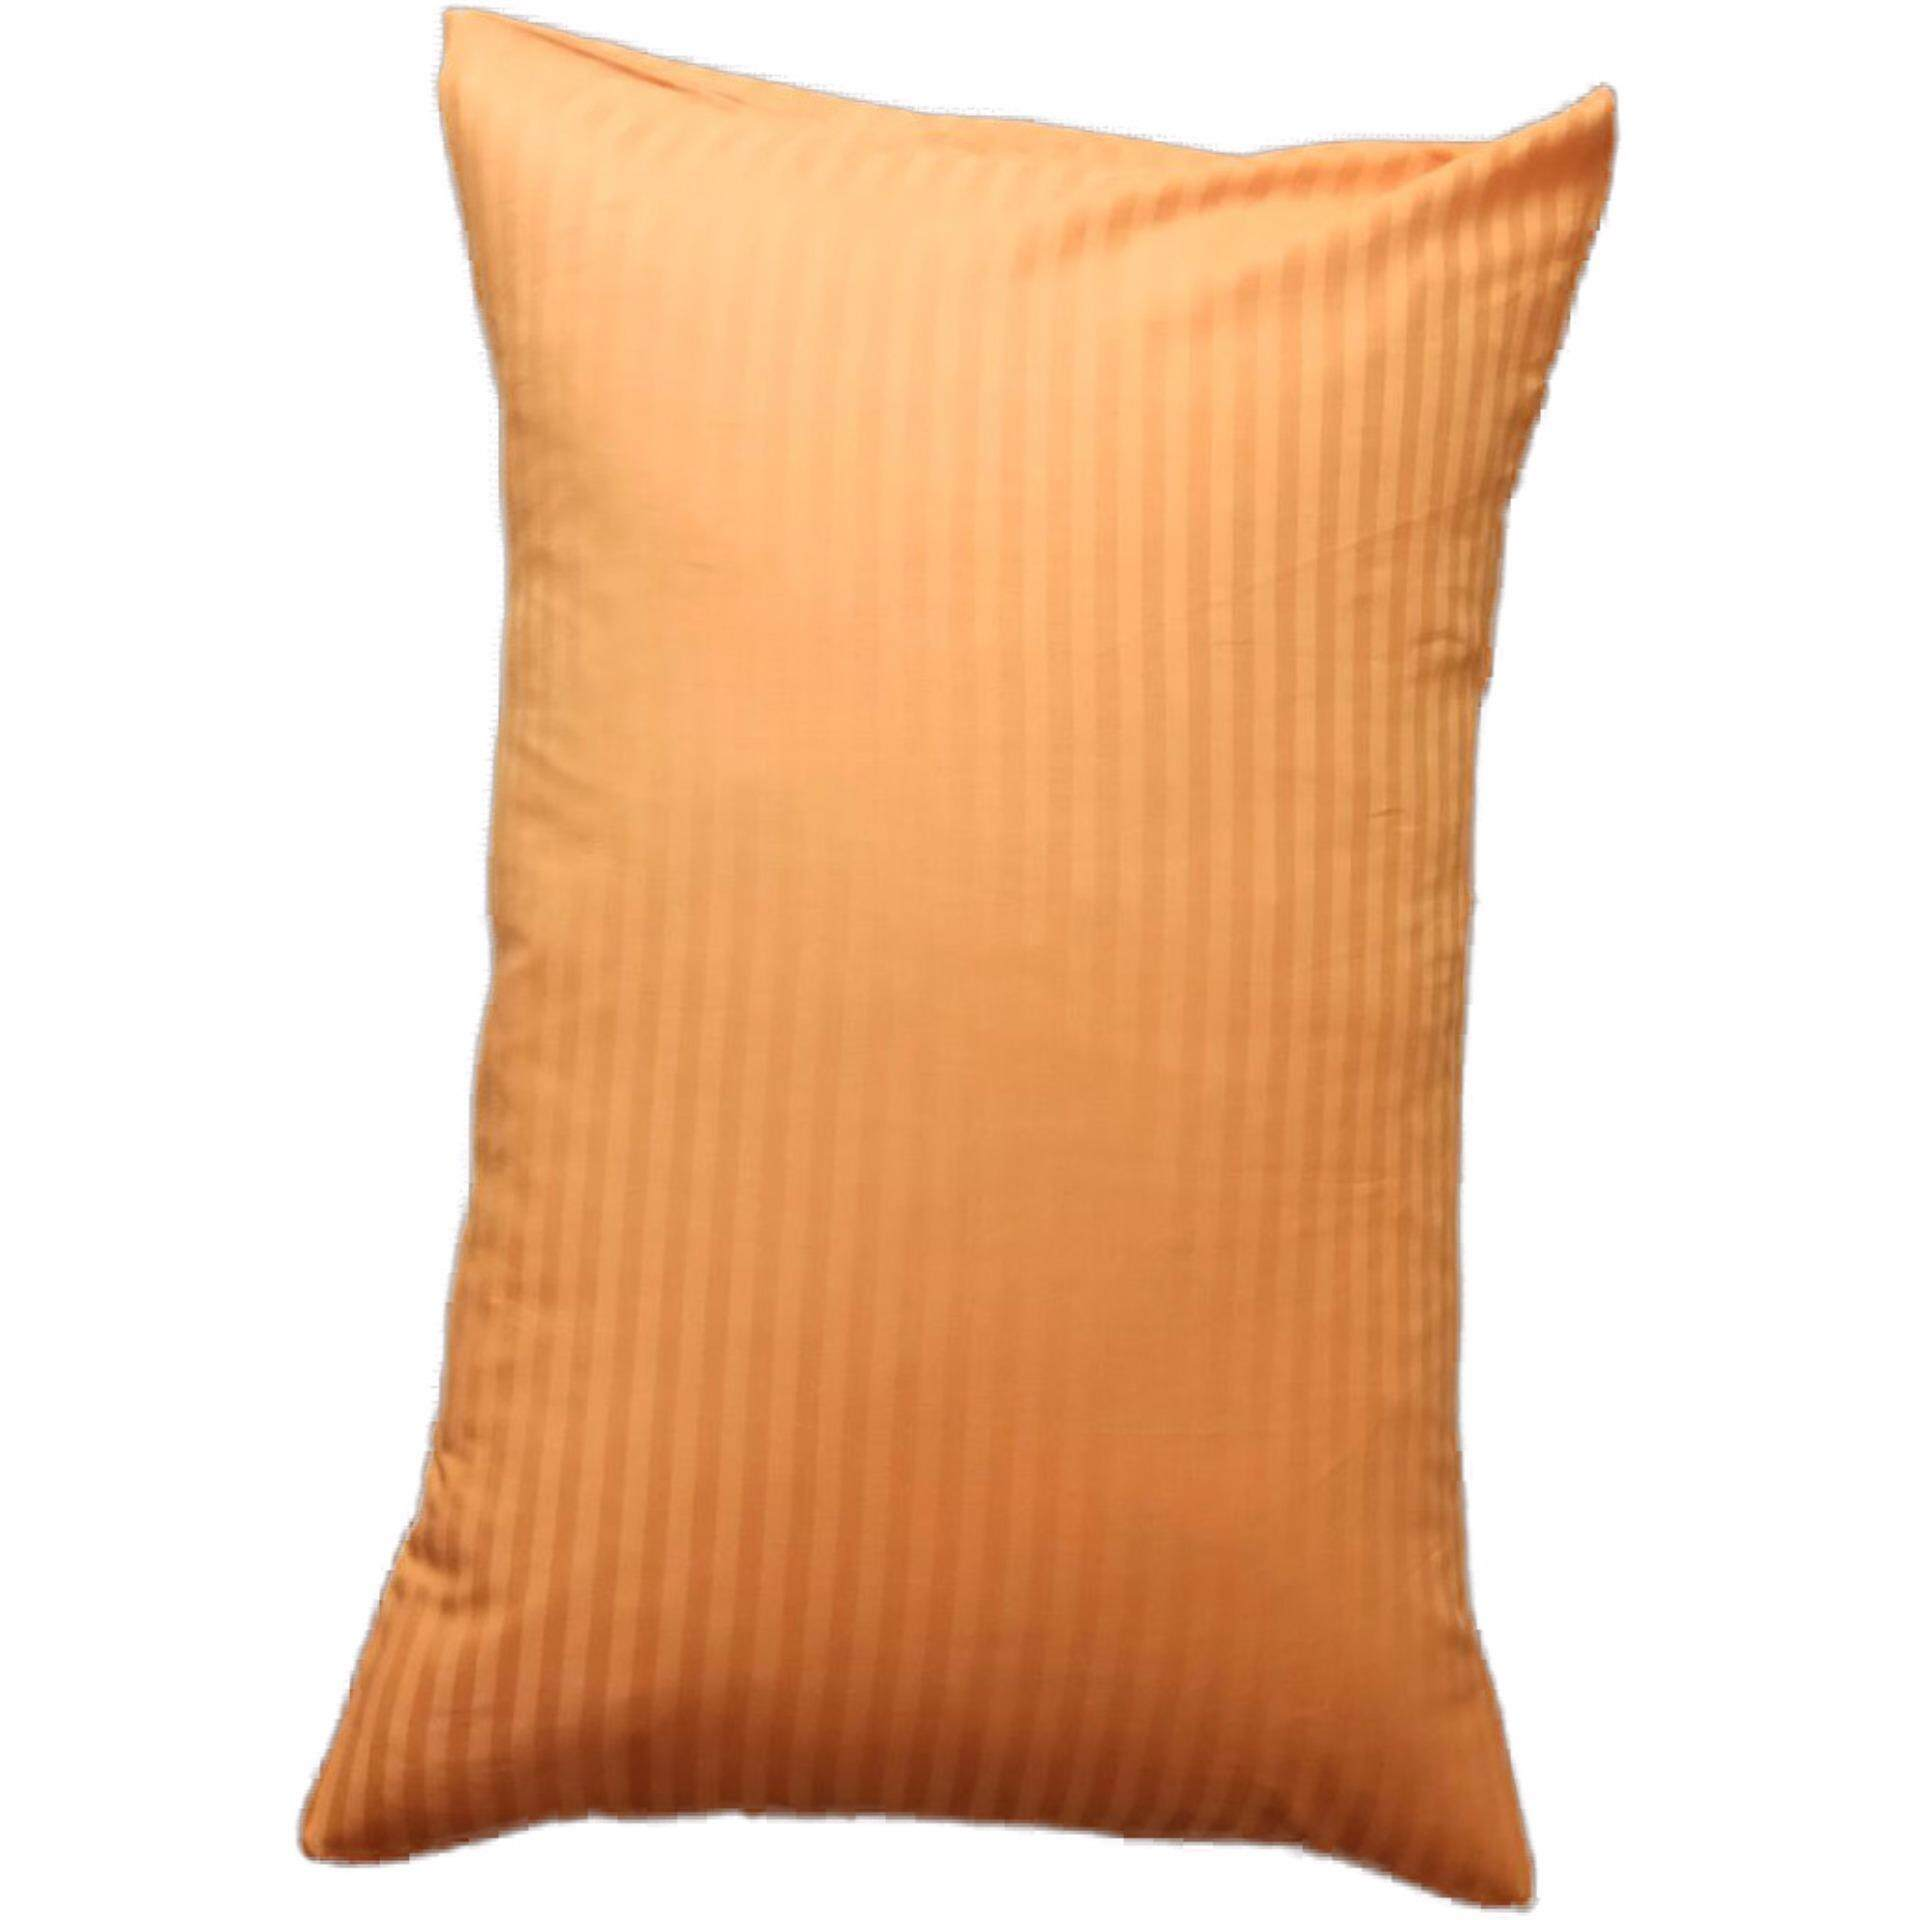 Ladubee Head Pillow Cover in (Orange Satin Stripes)